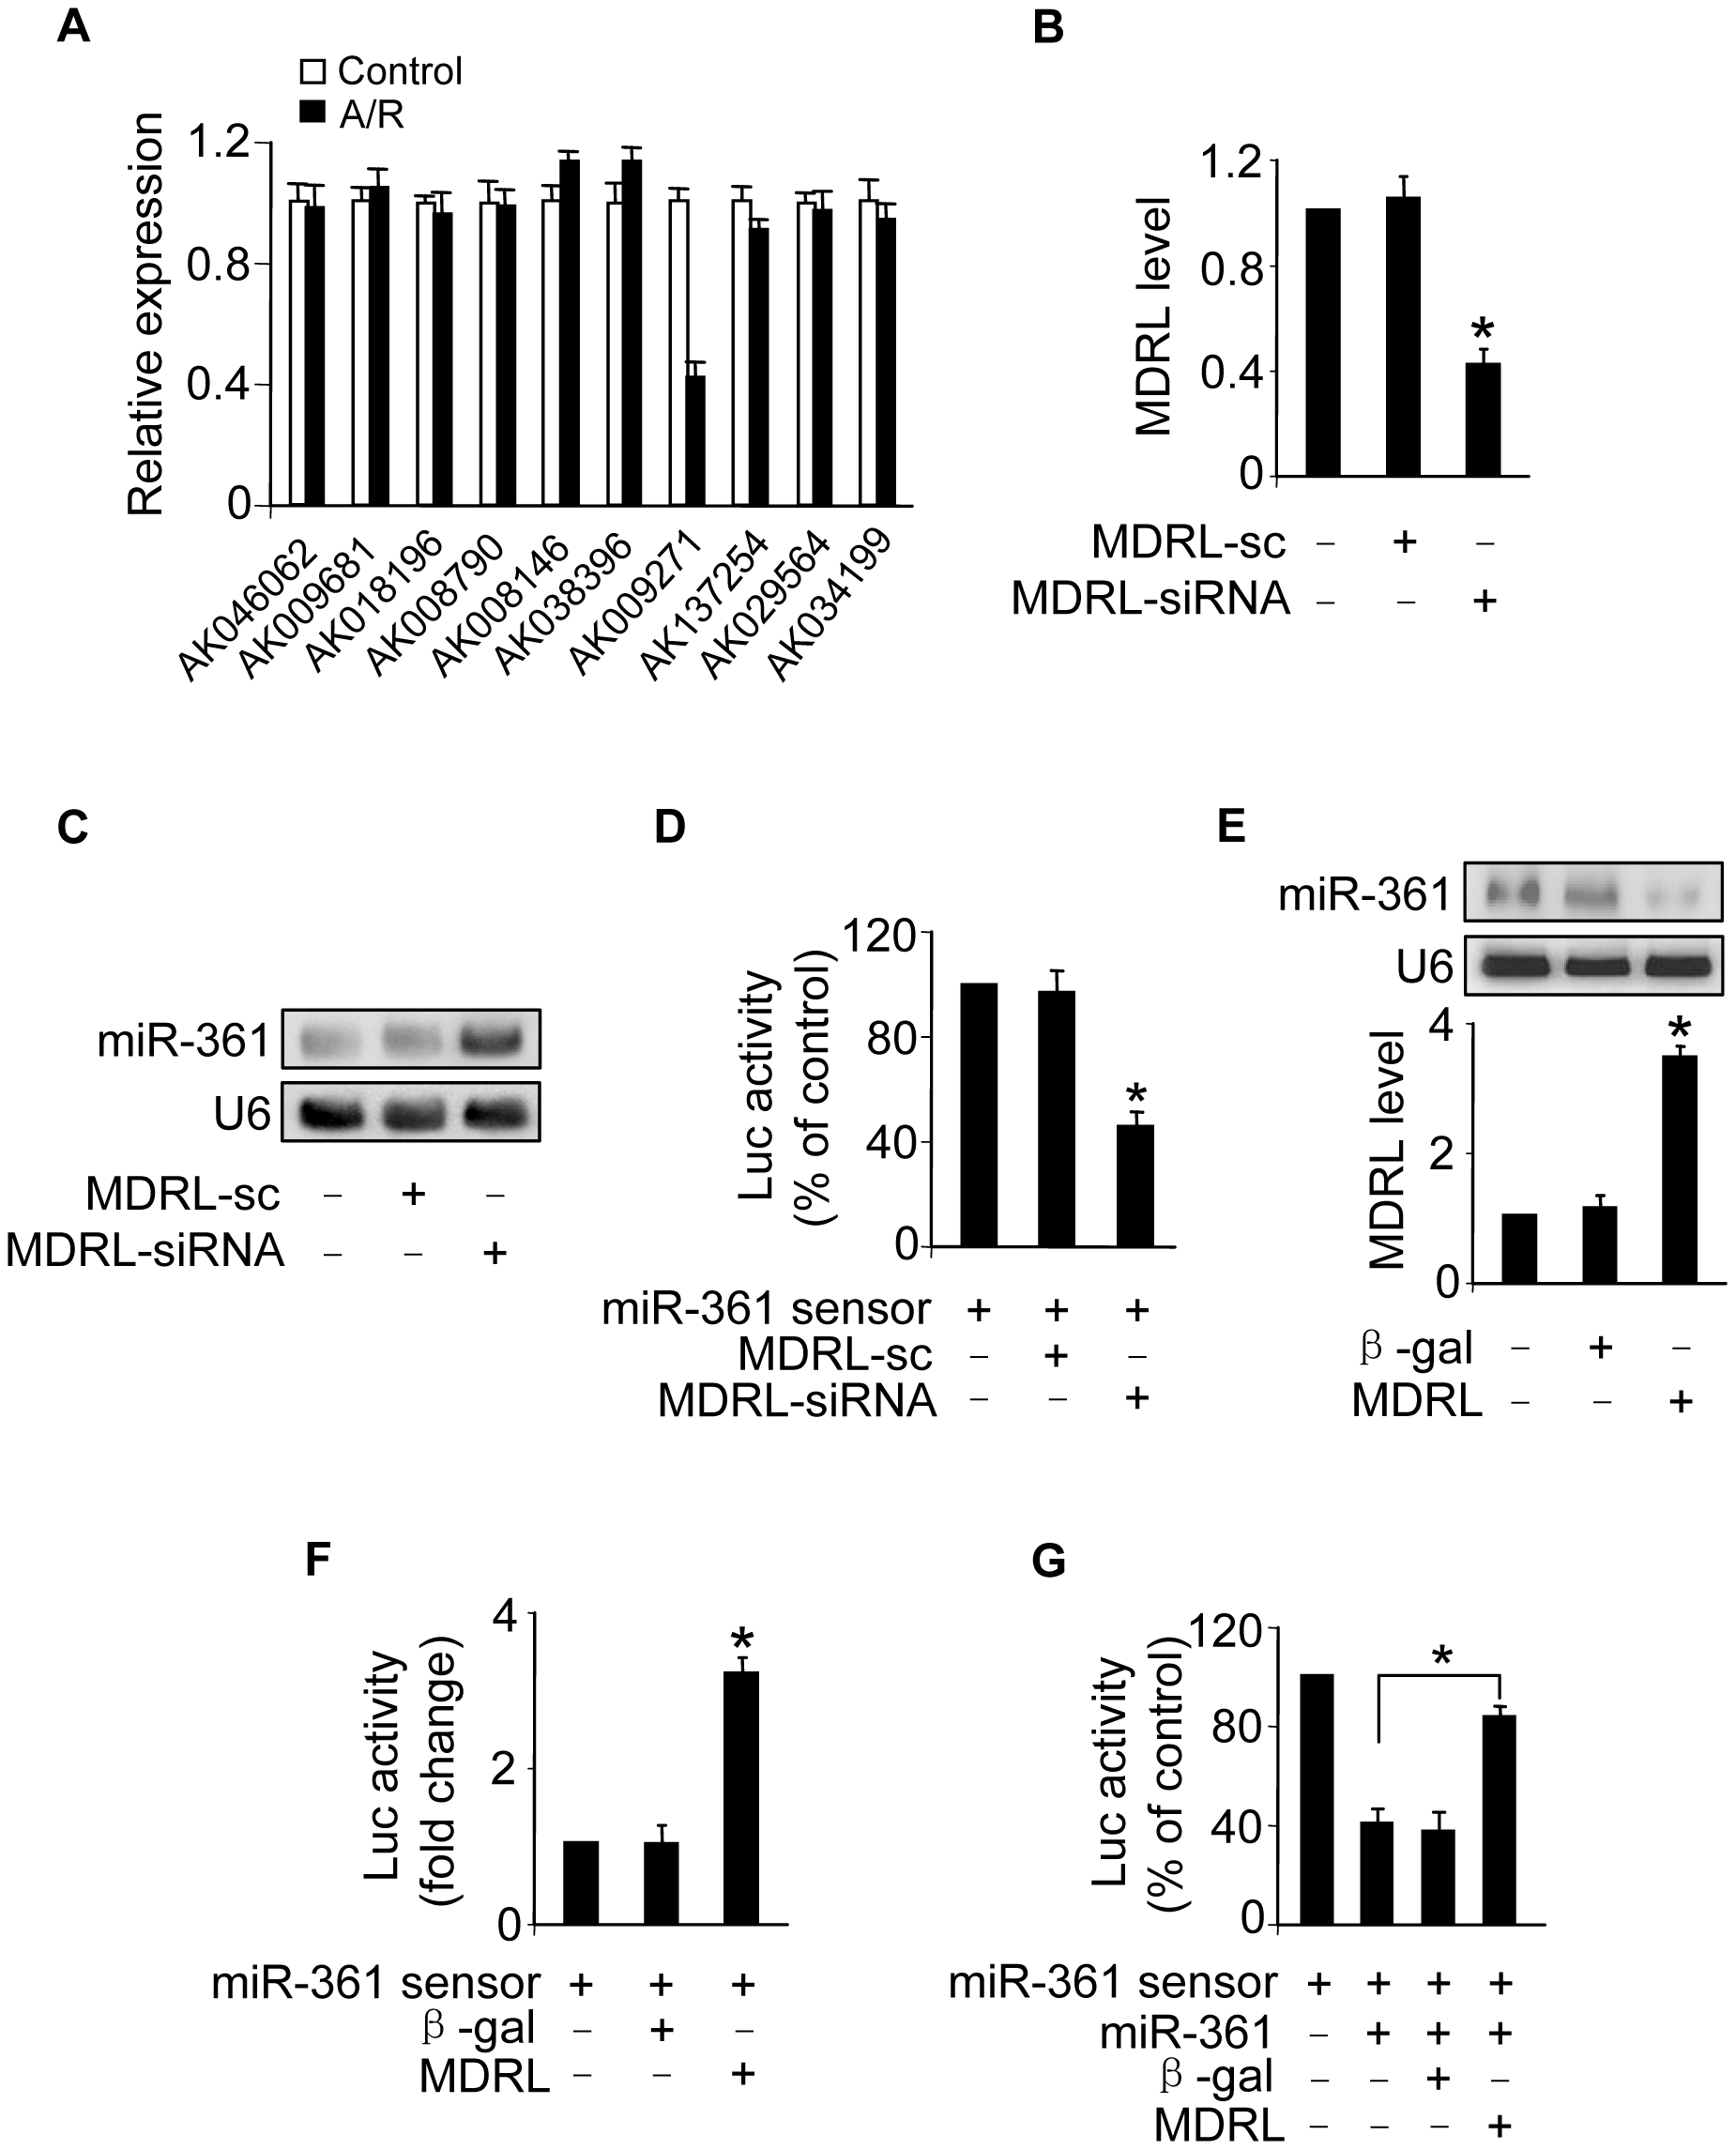 MDRL can regulate miR-361 expression and activity.